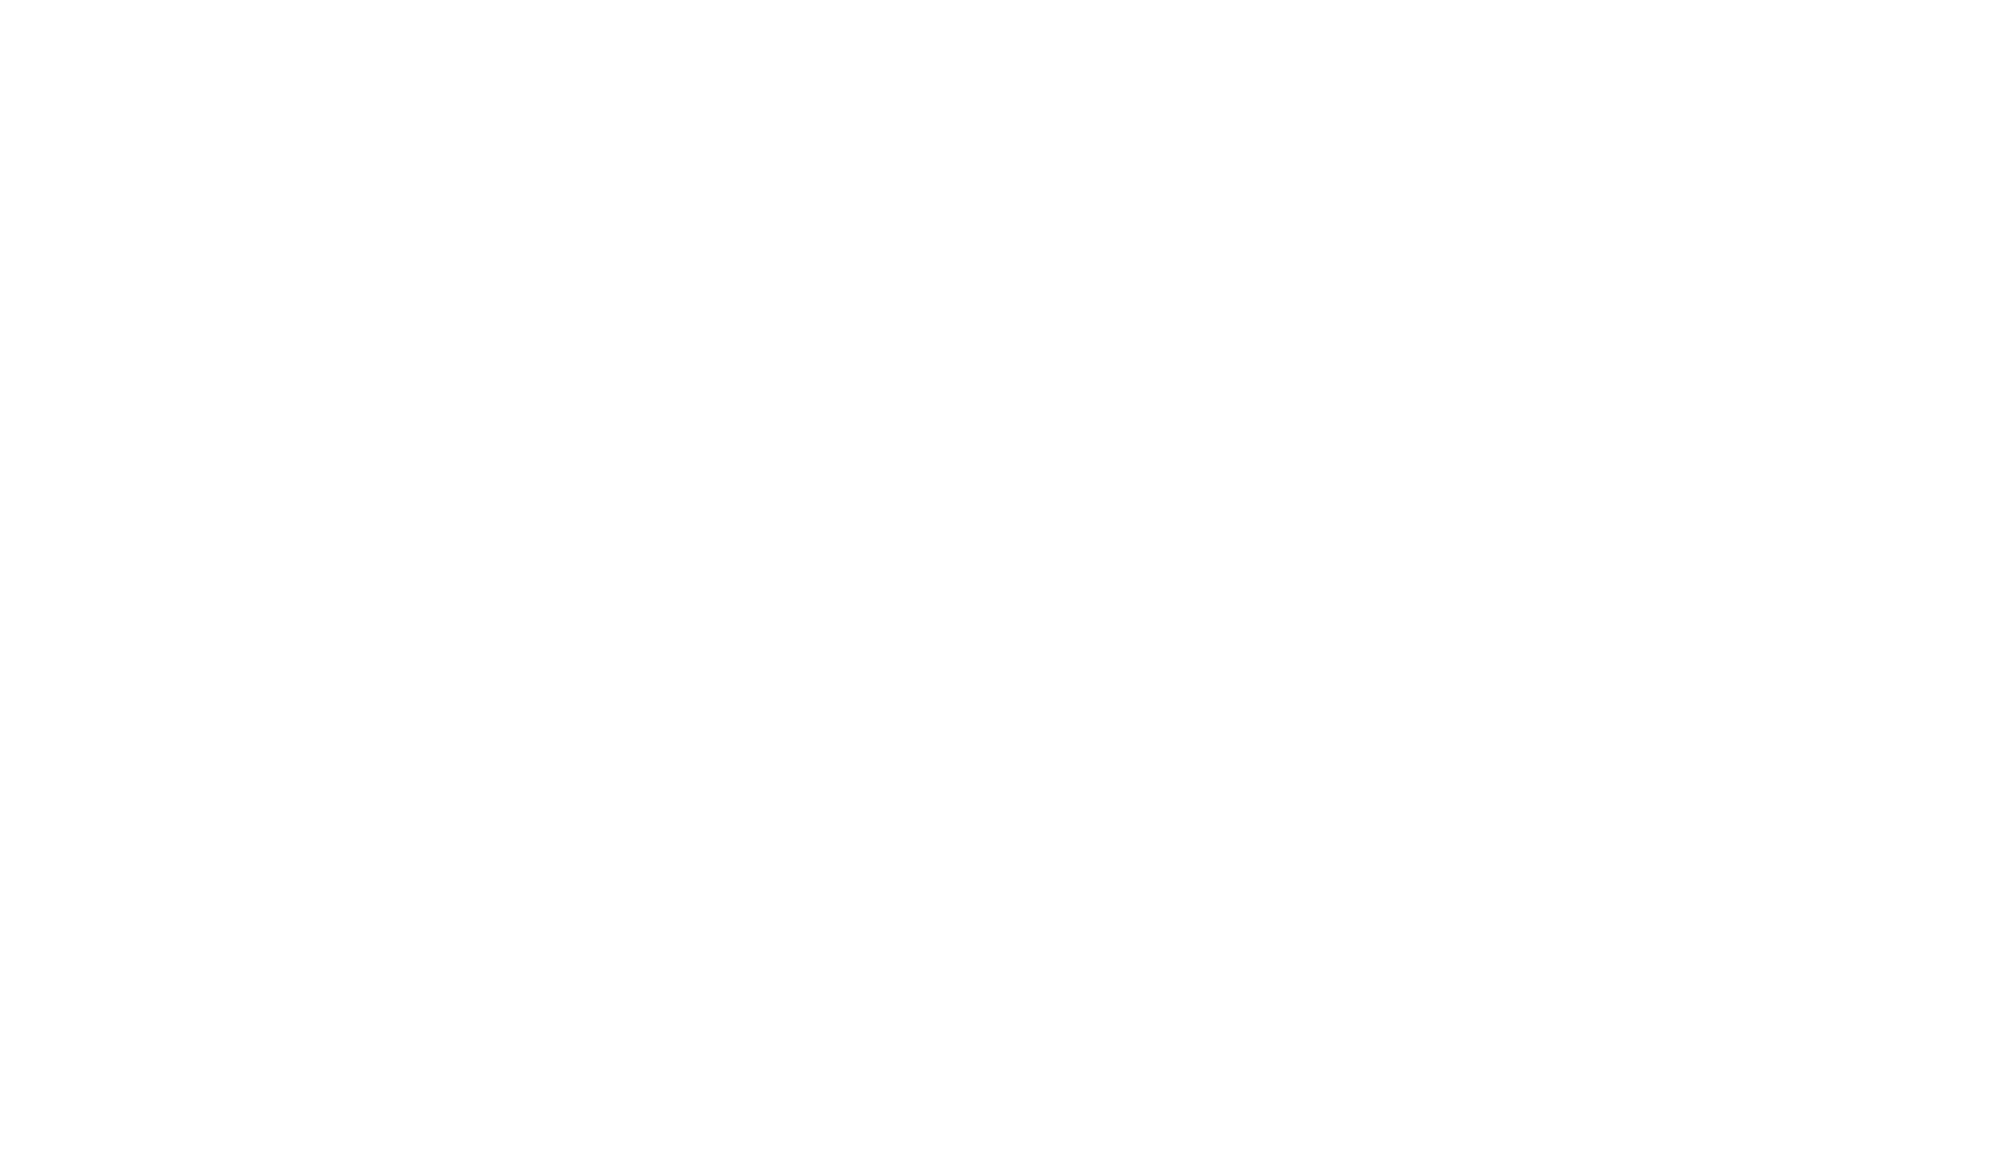 coolherbal logo black